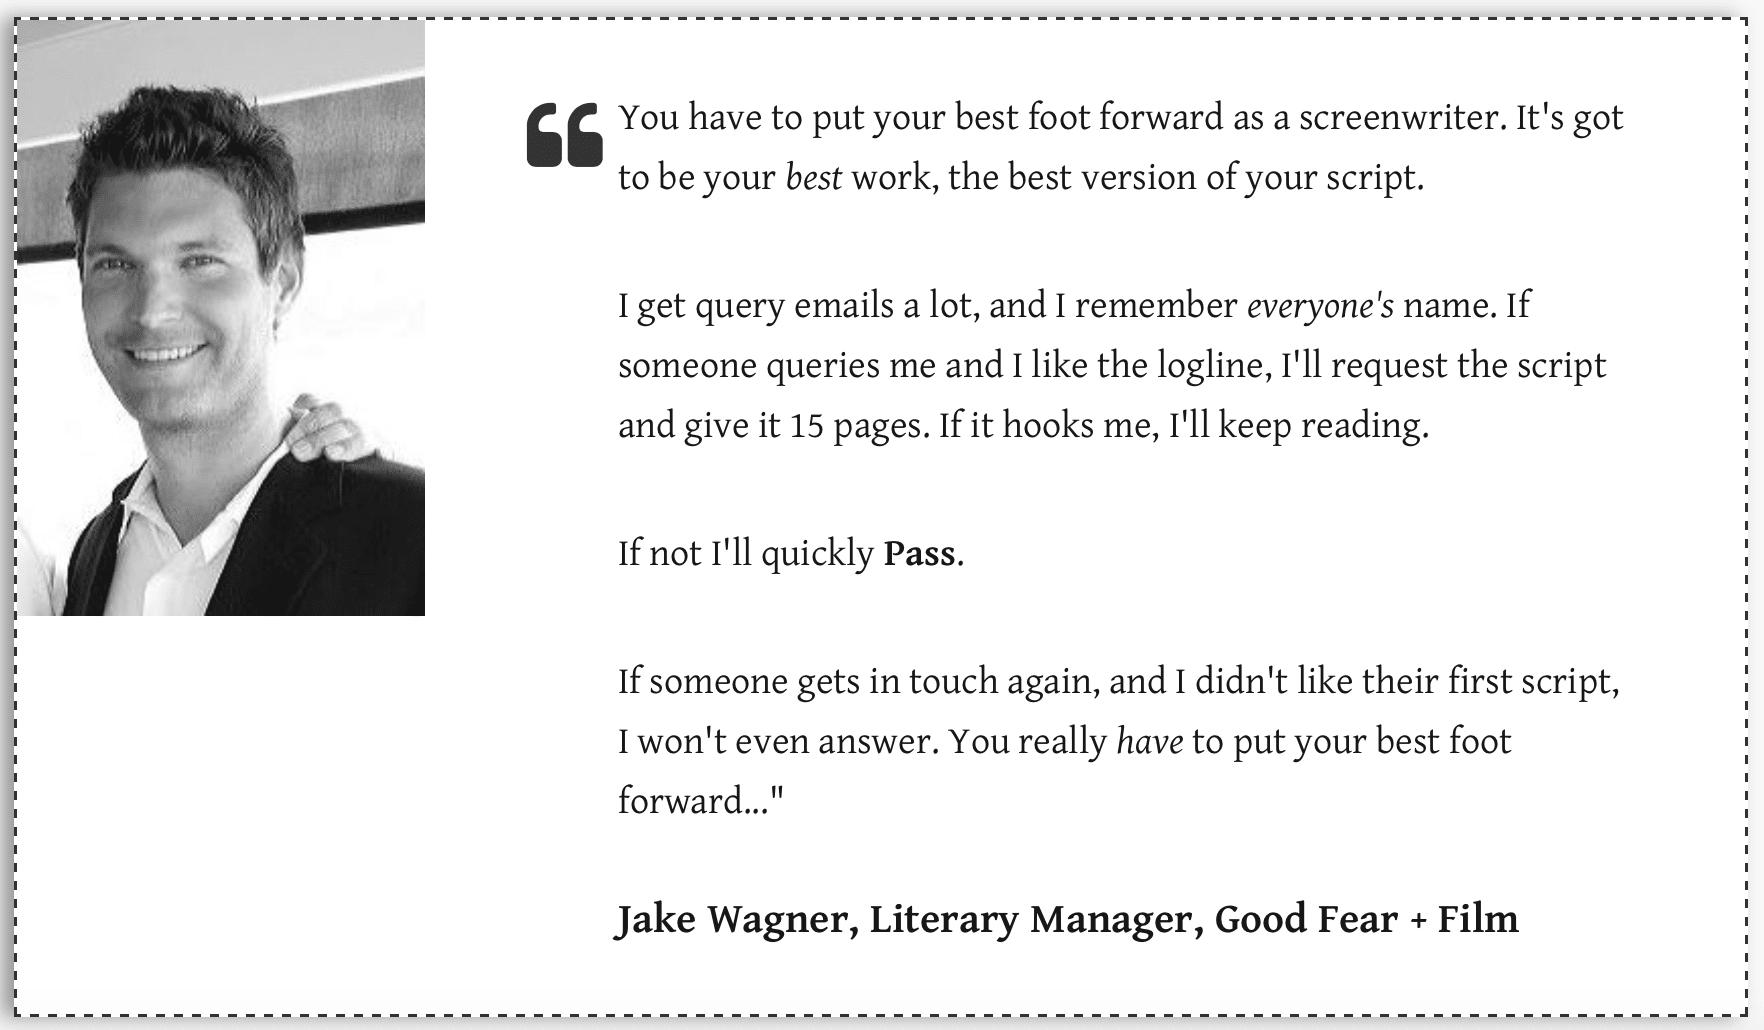 Jake Wagner literary manager